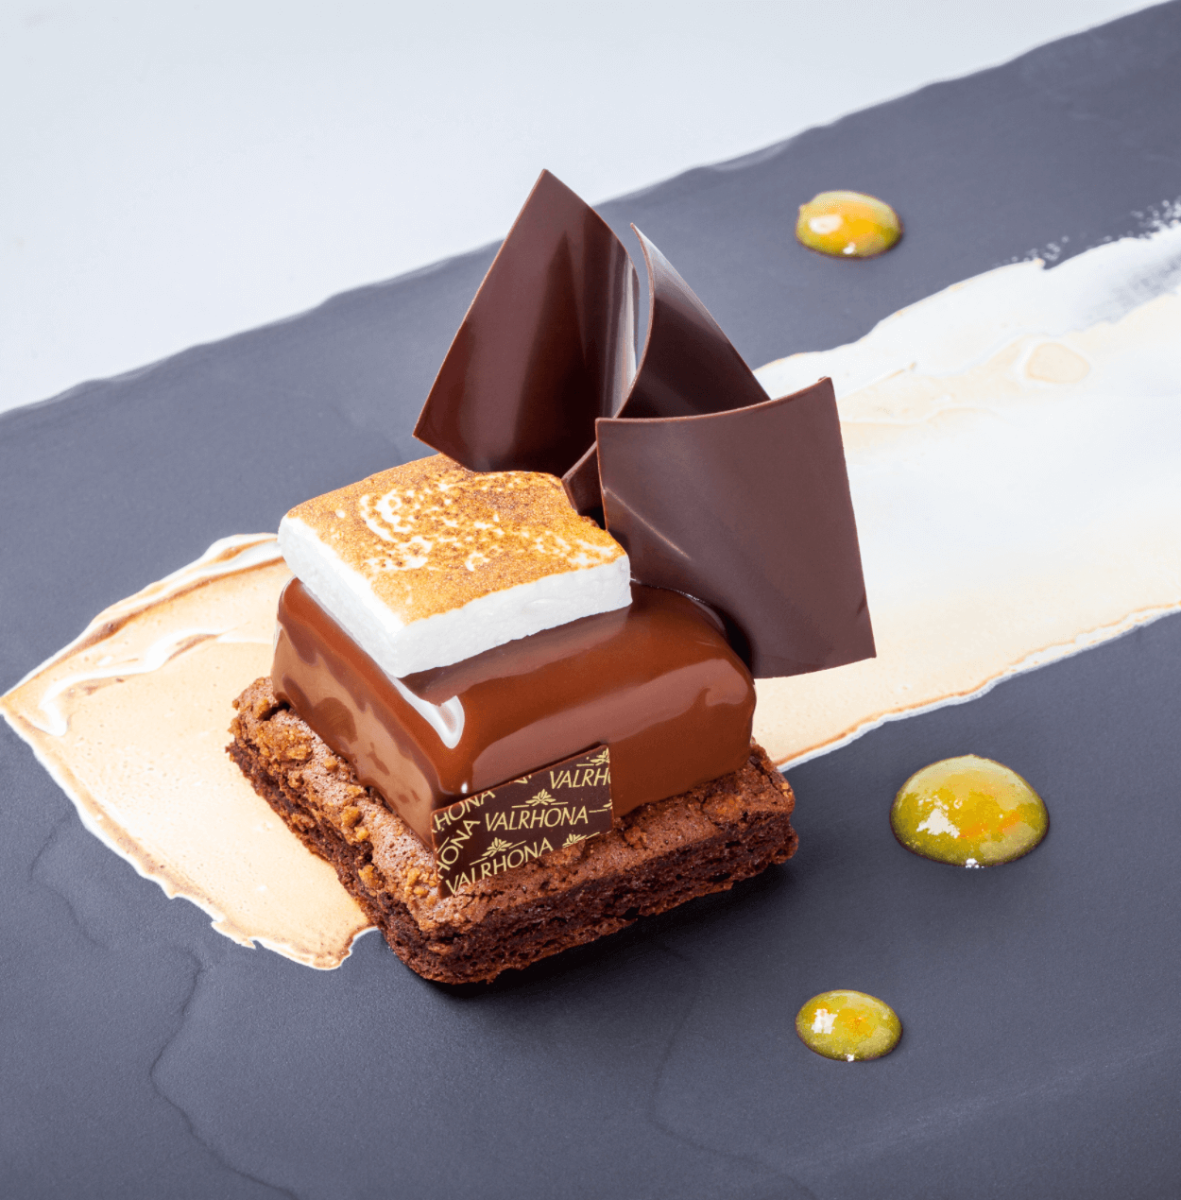 S'mores Plated Dessert